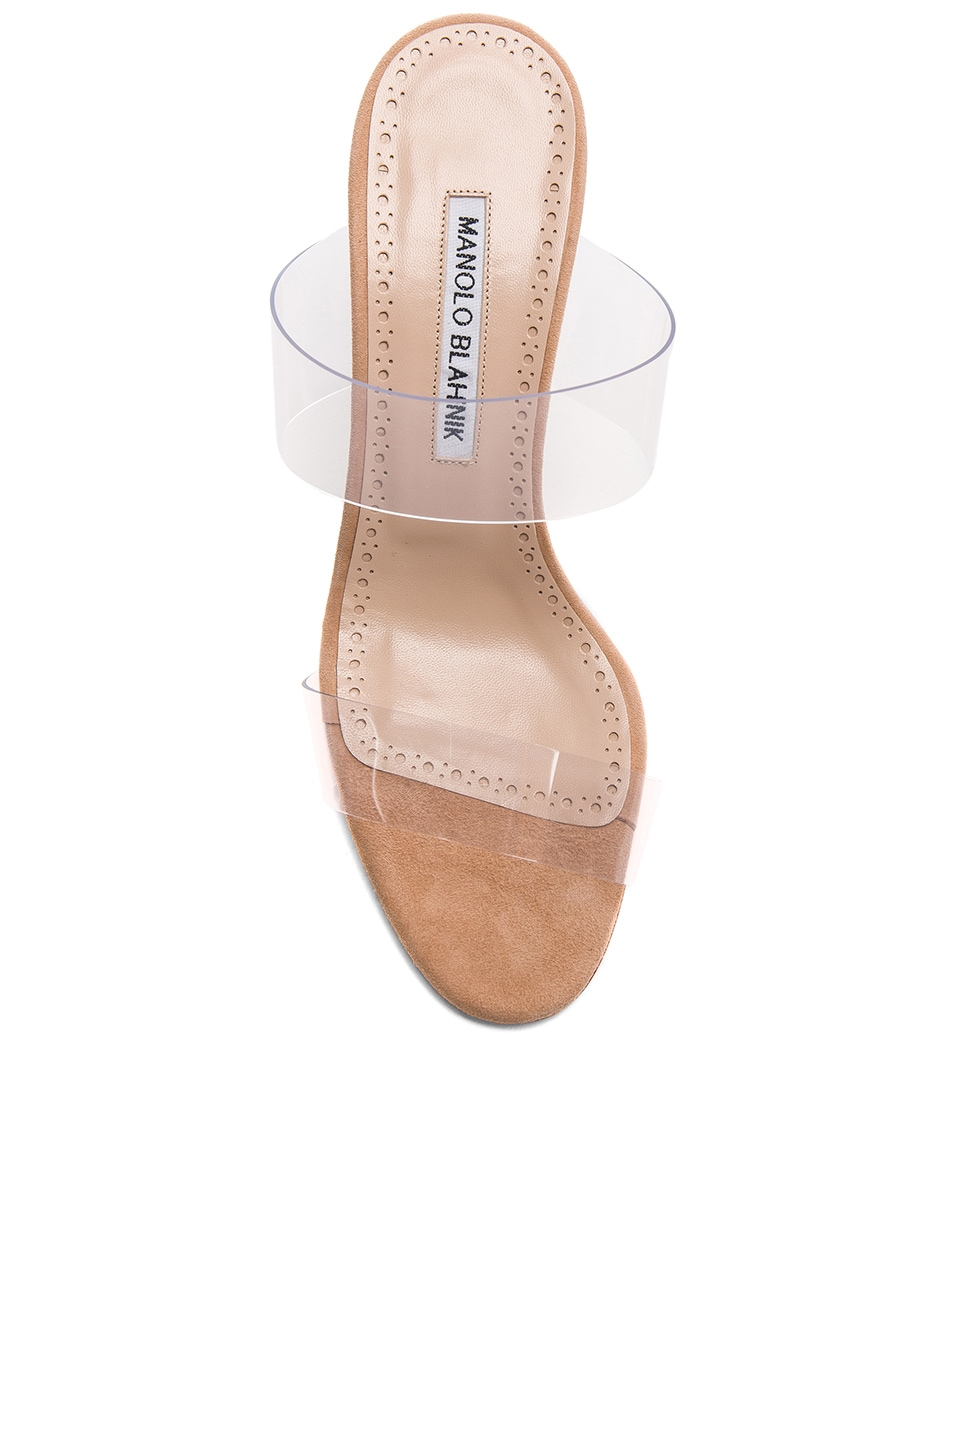 Image 4 of Manolo Blahnik PVC Scolto Sandals in Nude Suede